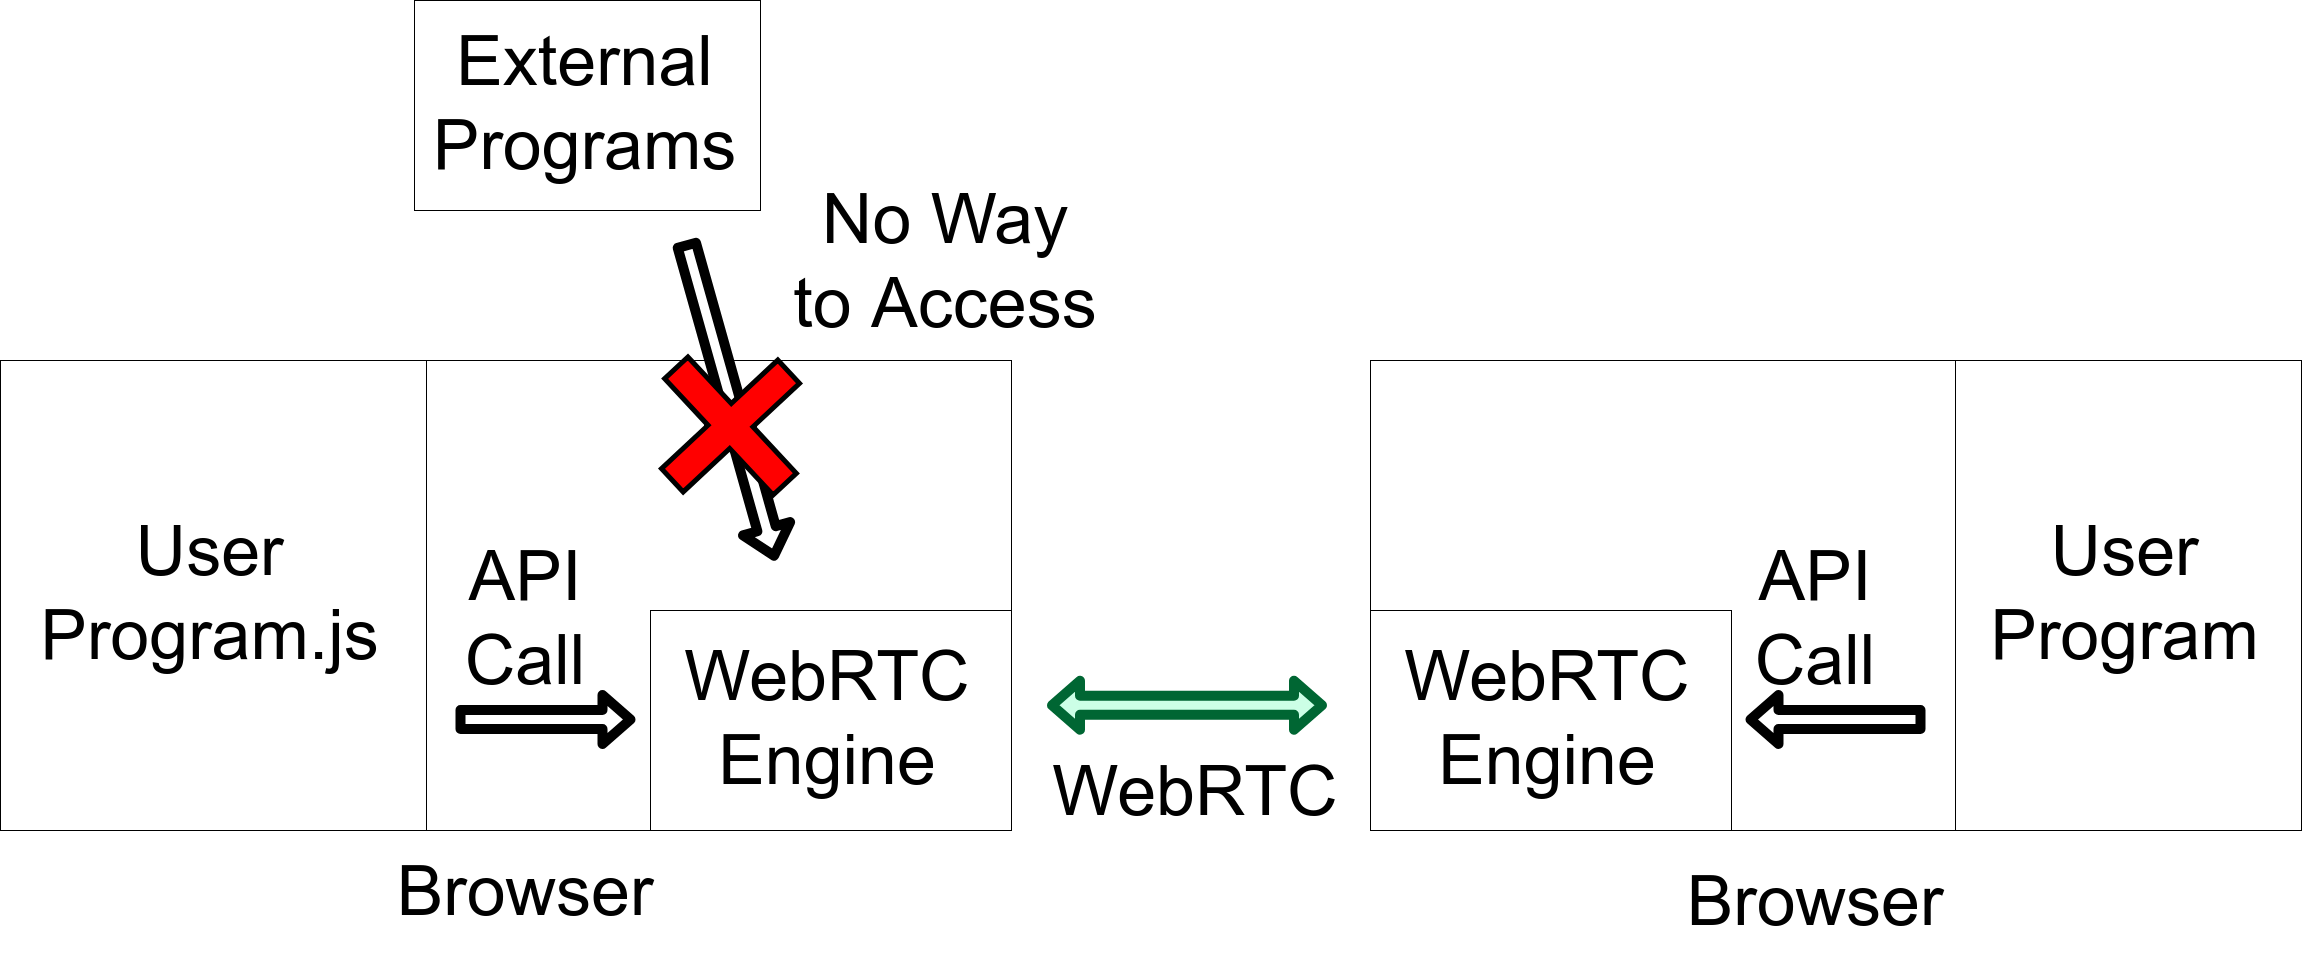 Can not control WebRTC engine inside browser